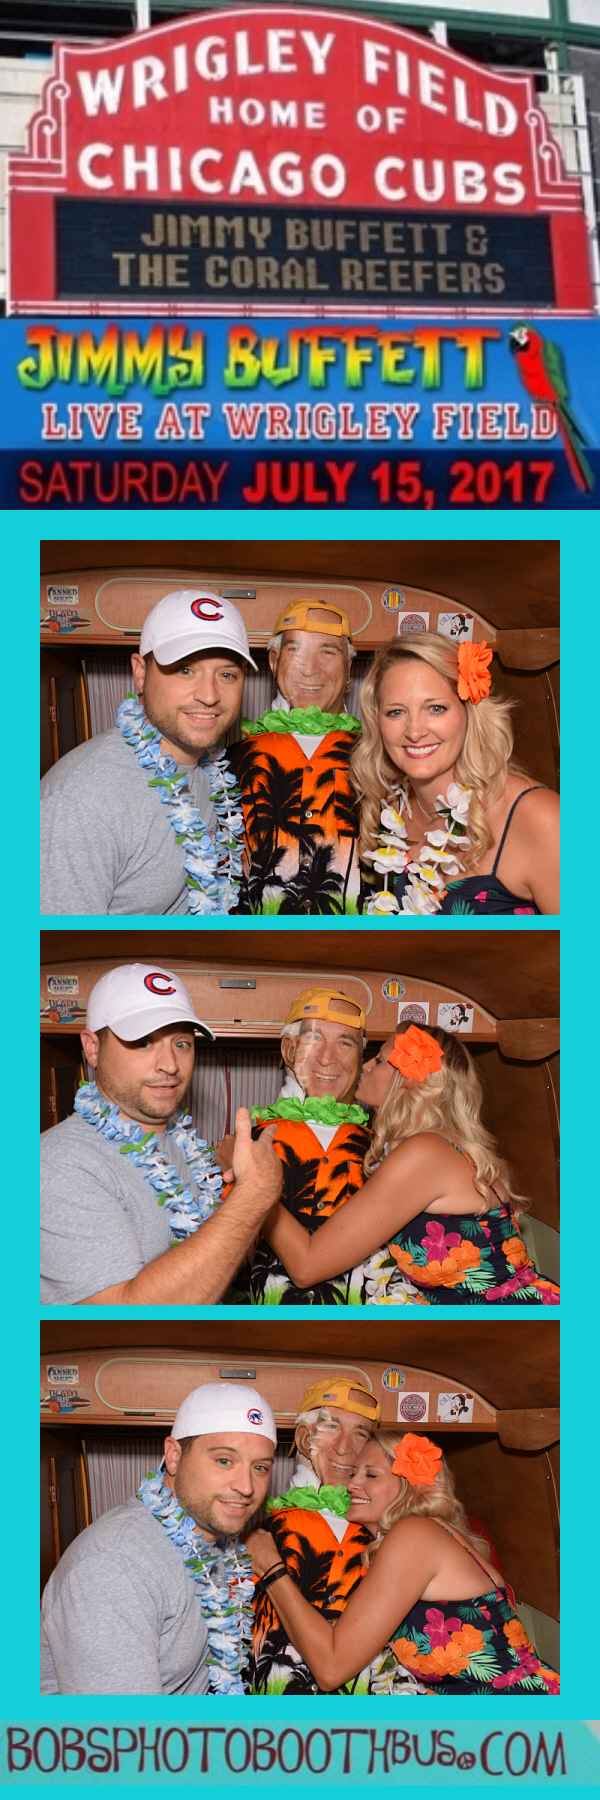 Jimmy Buffett final photo strip graphic_46.jpg